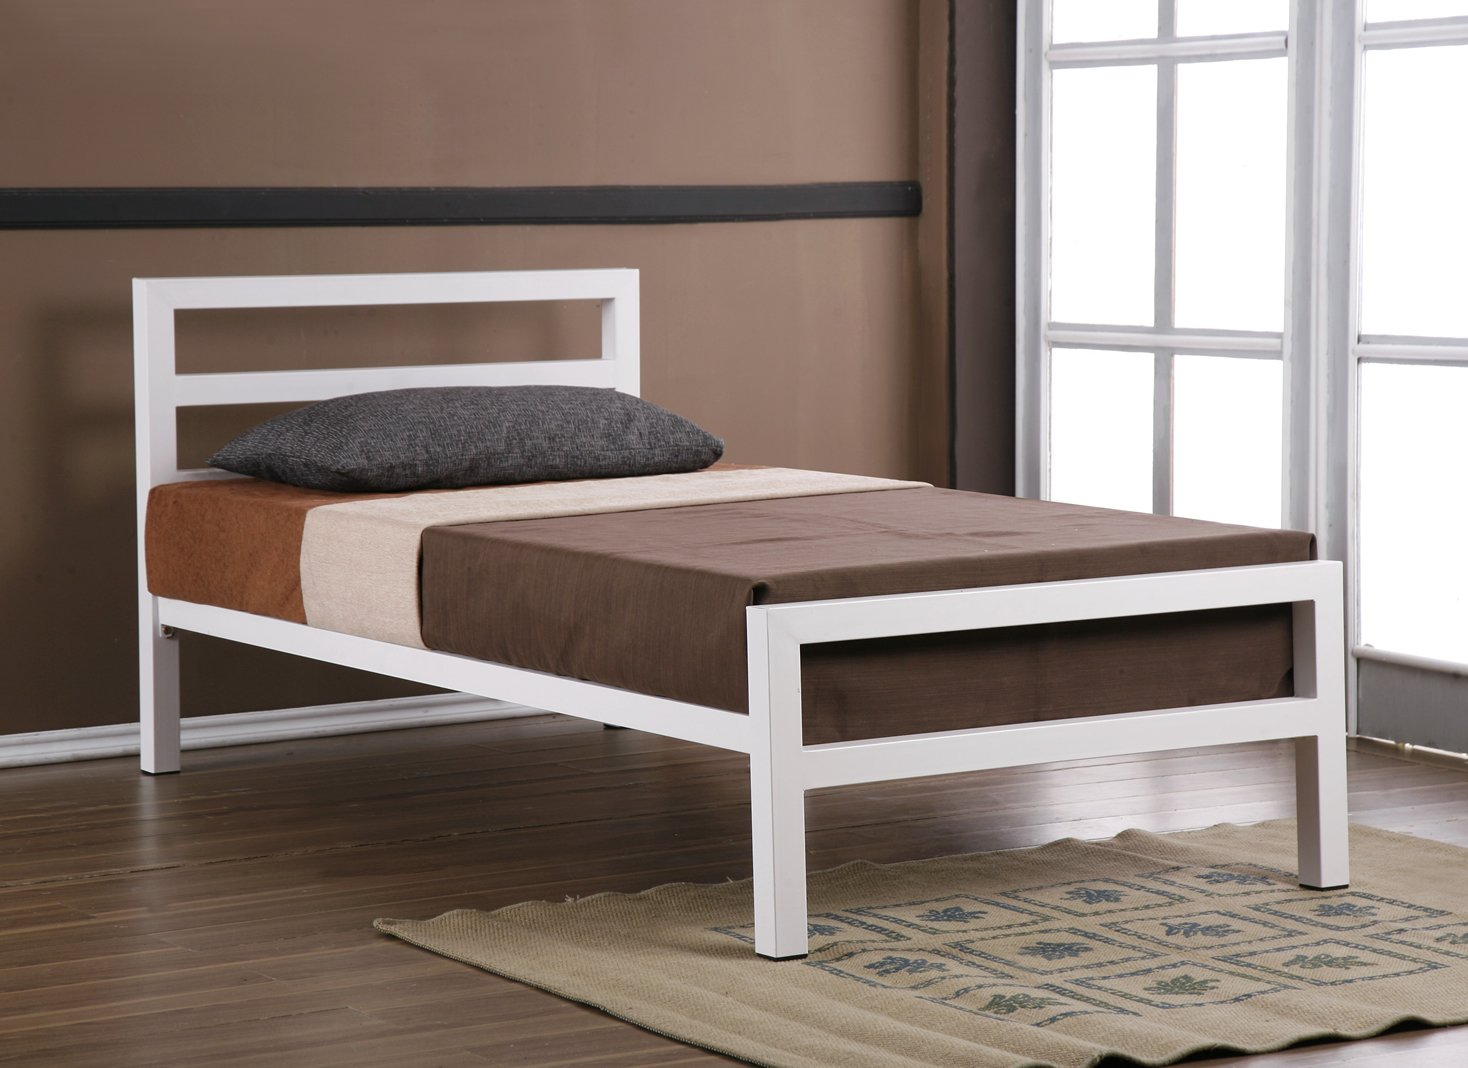 City block 3ft single white modern metal bed frame - City Block 3ft Single White Modern Metal Bed Frame Amazon Co Uk Kitchen Home